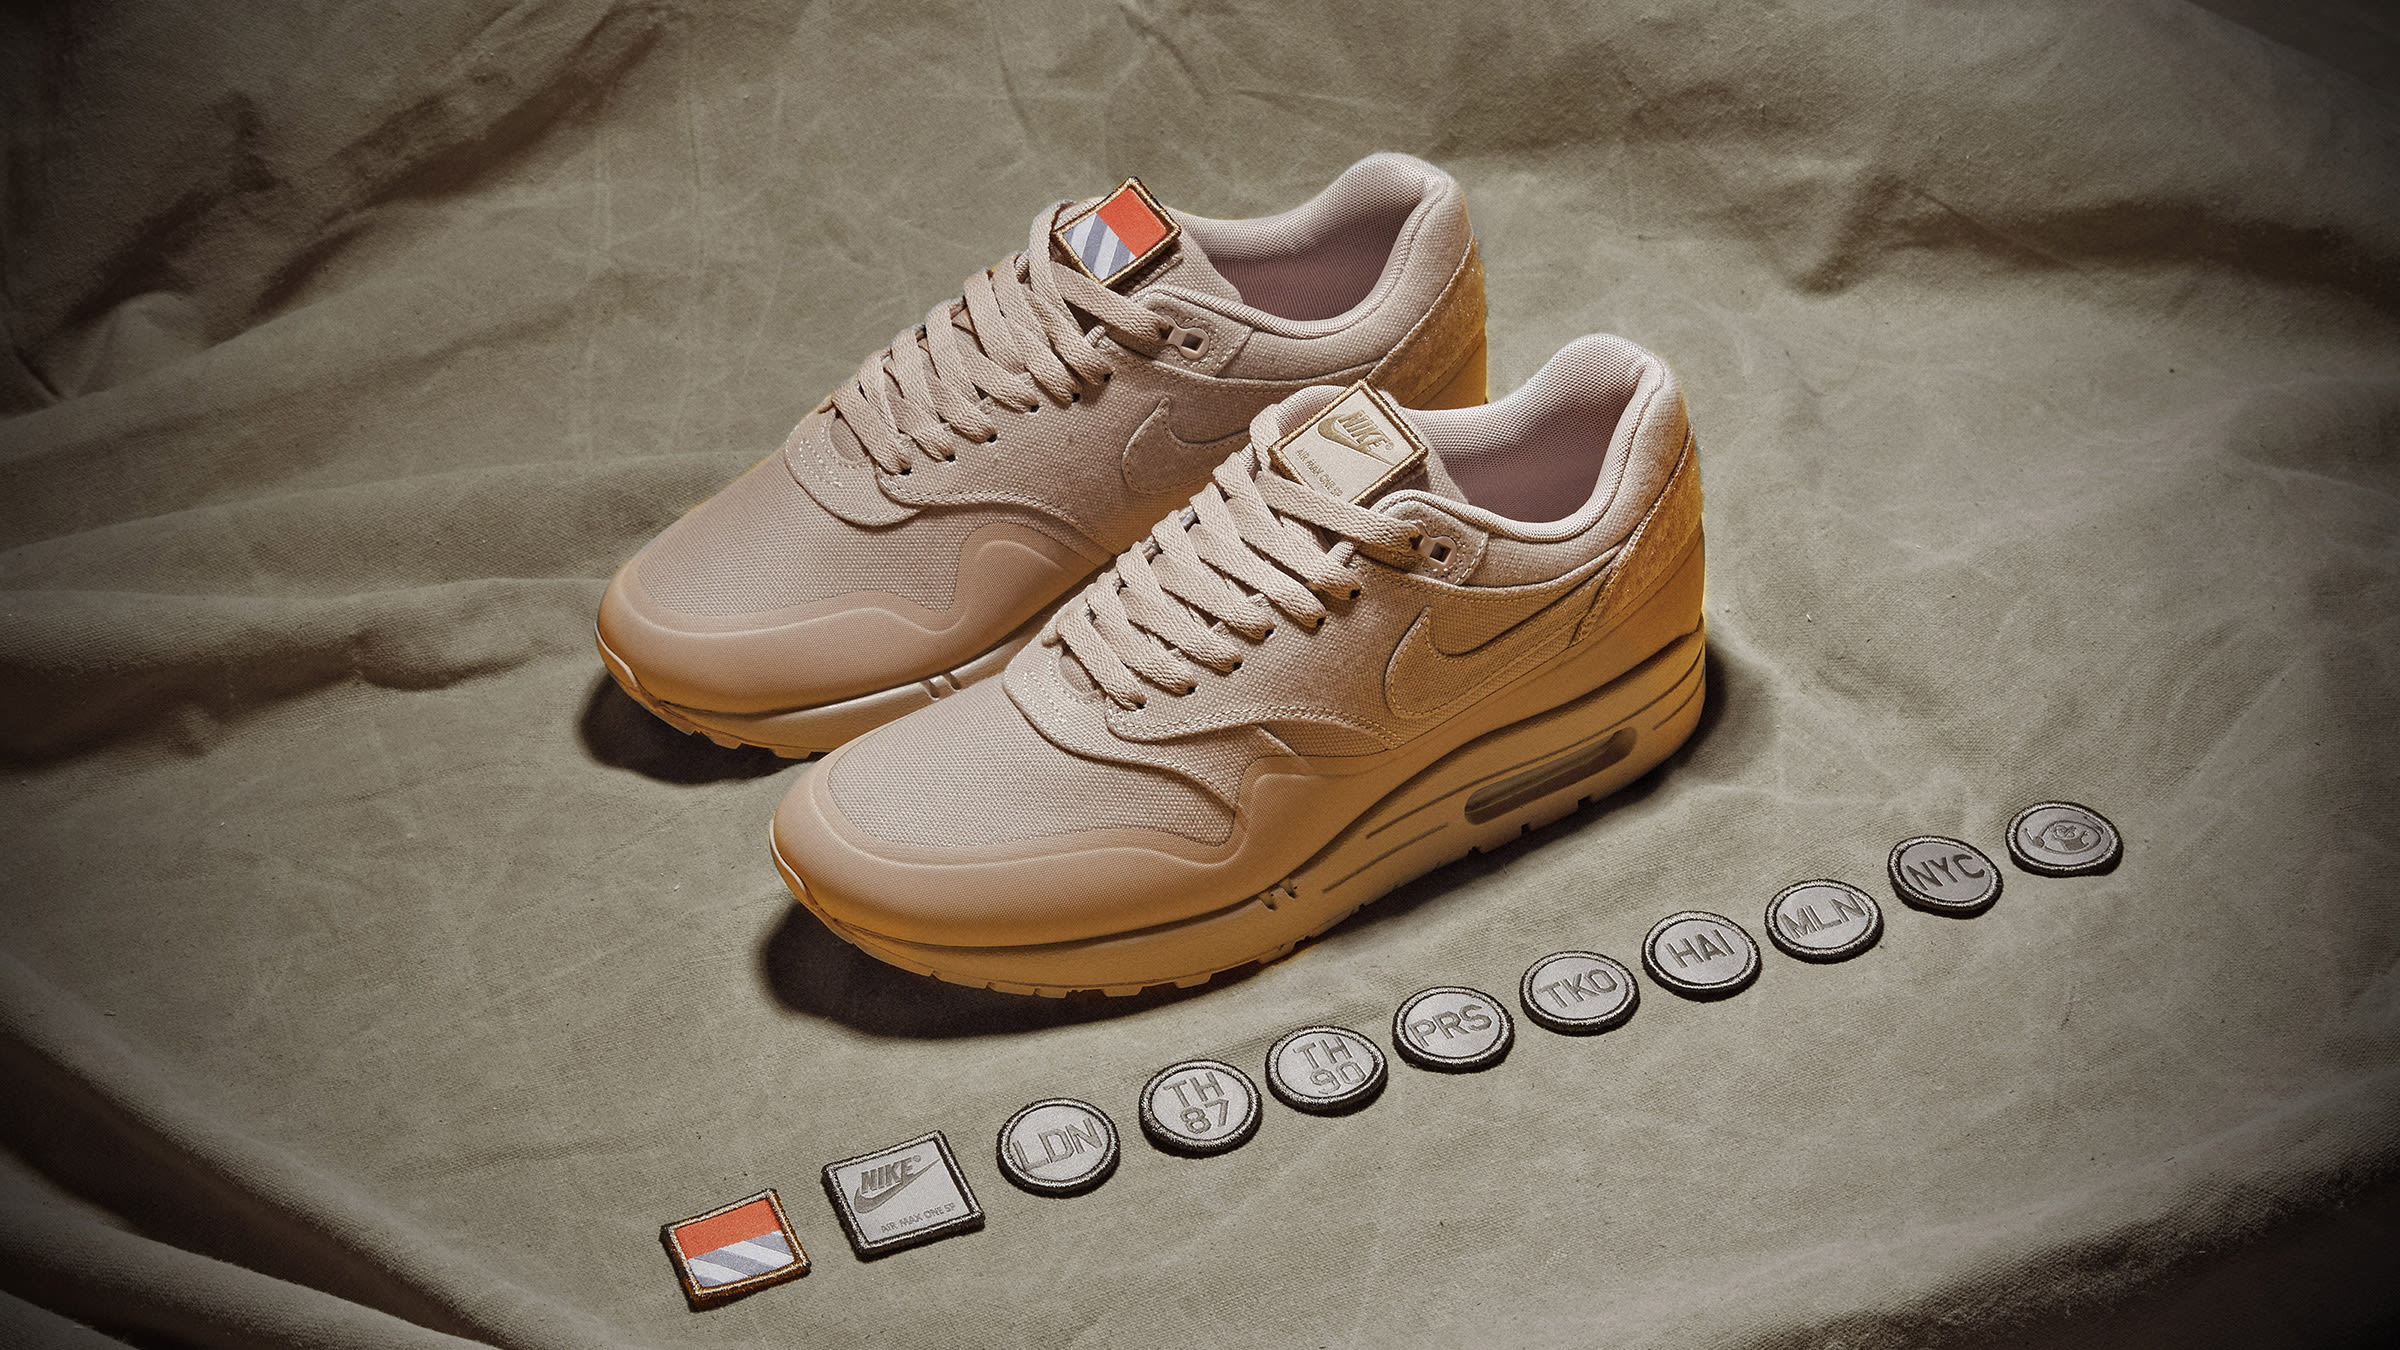 f86cfa926a Nike Air Max 1 V SP 'Patch' Sand | END.